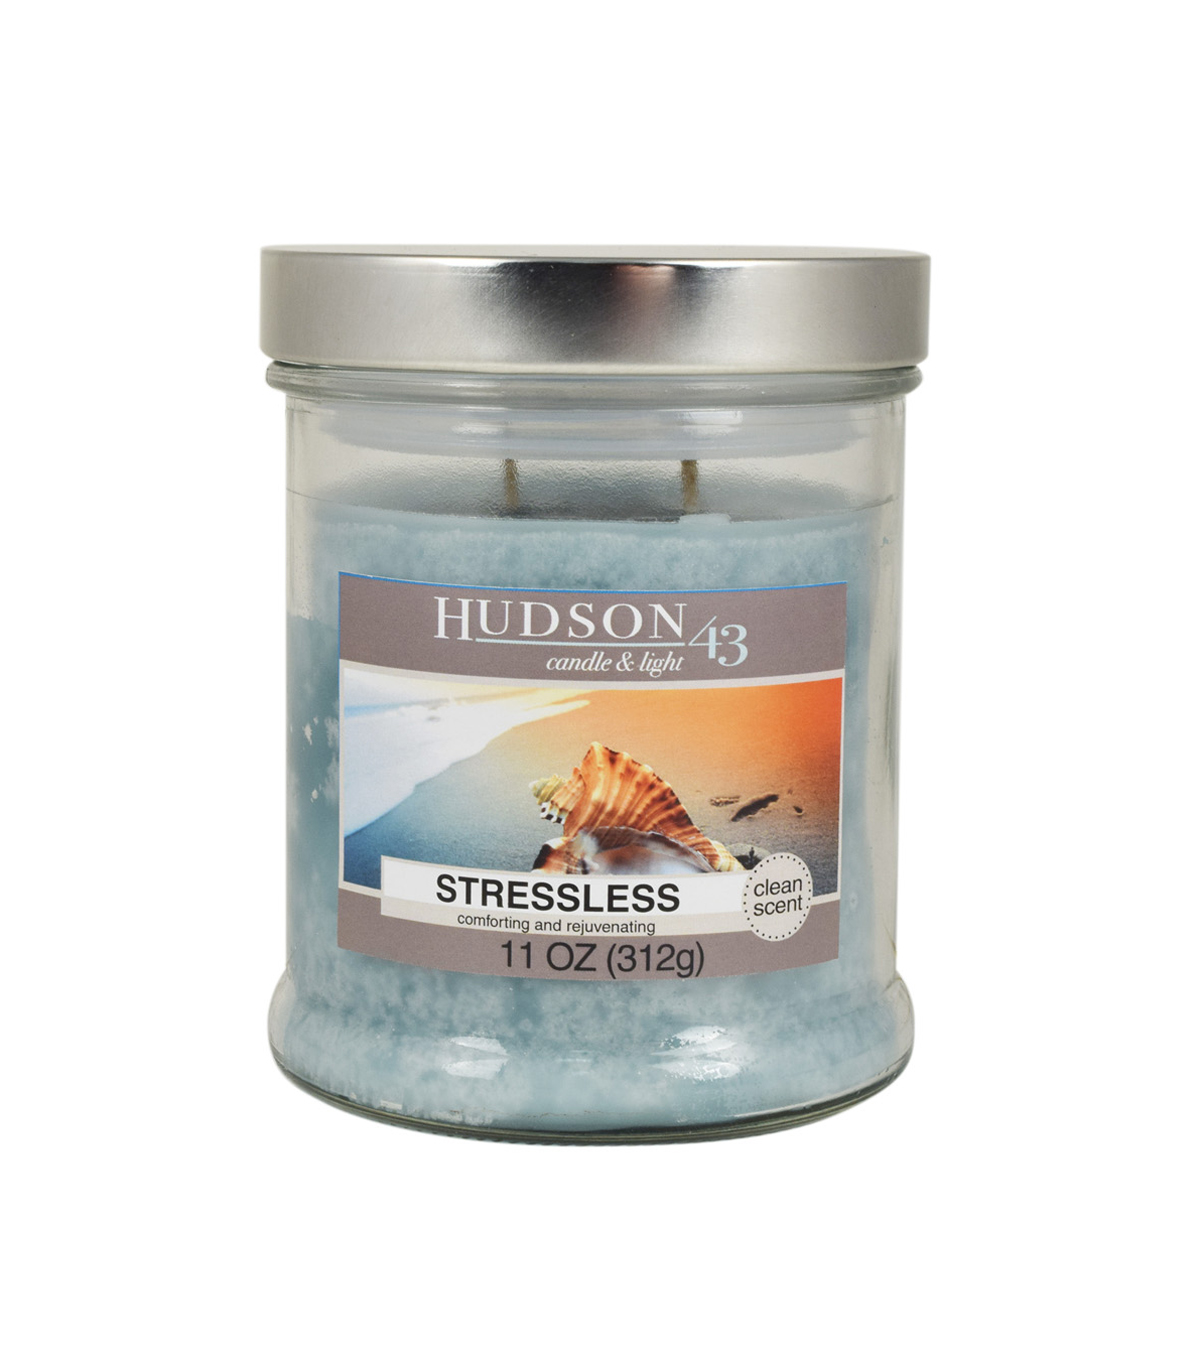 Hudson 43 Candle & Light Collection 11oz Stressless Jar